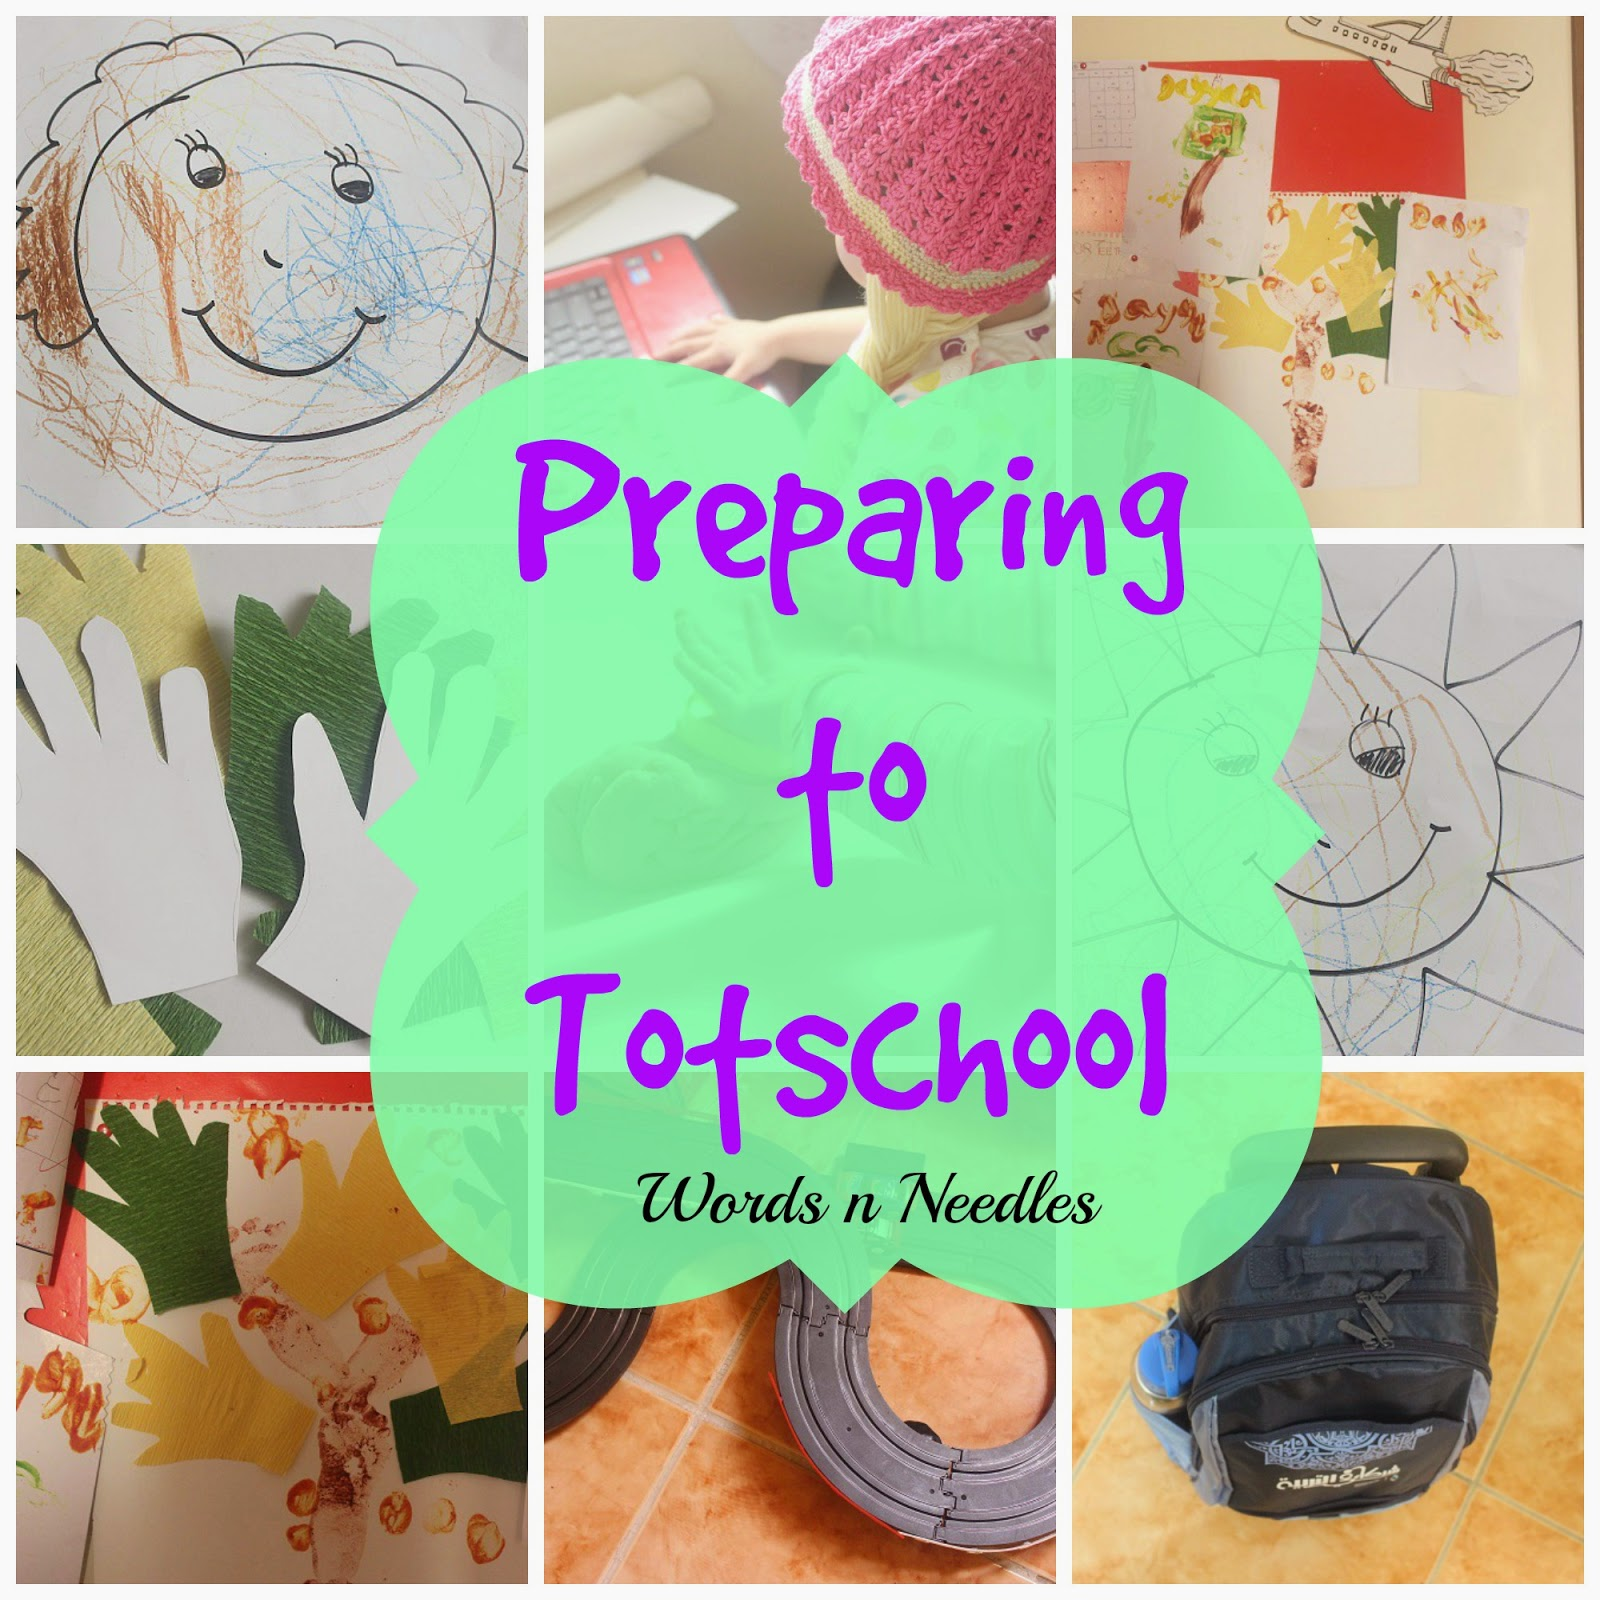 different things to do at totschool